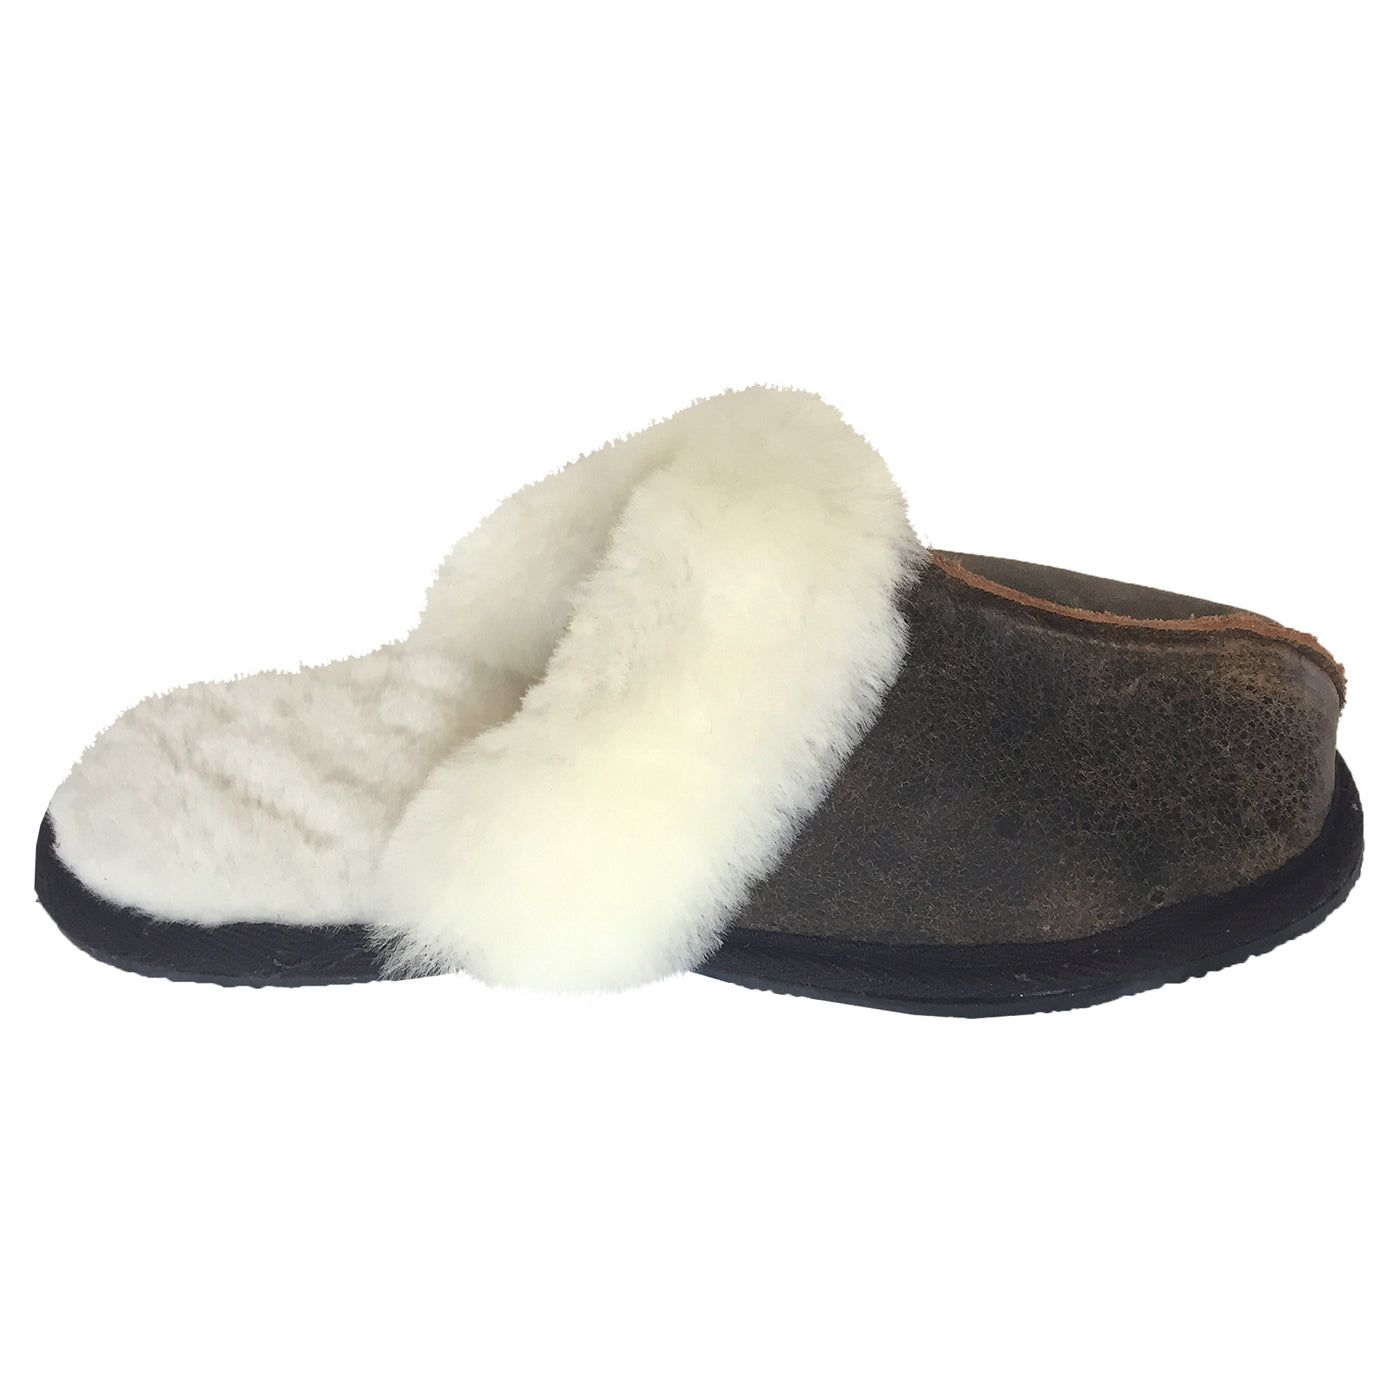 Crepe Sole – Leather-Moccasins